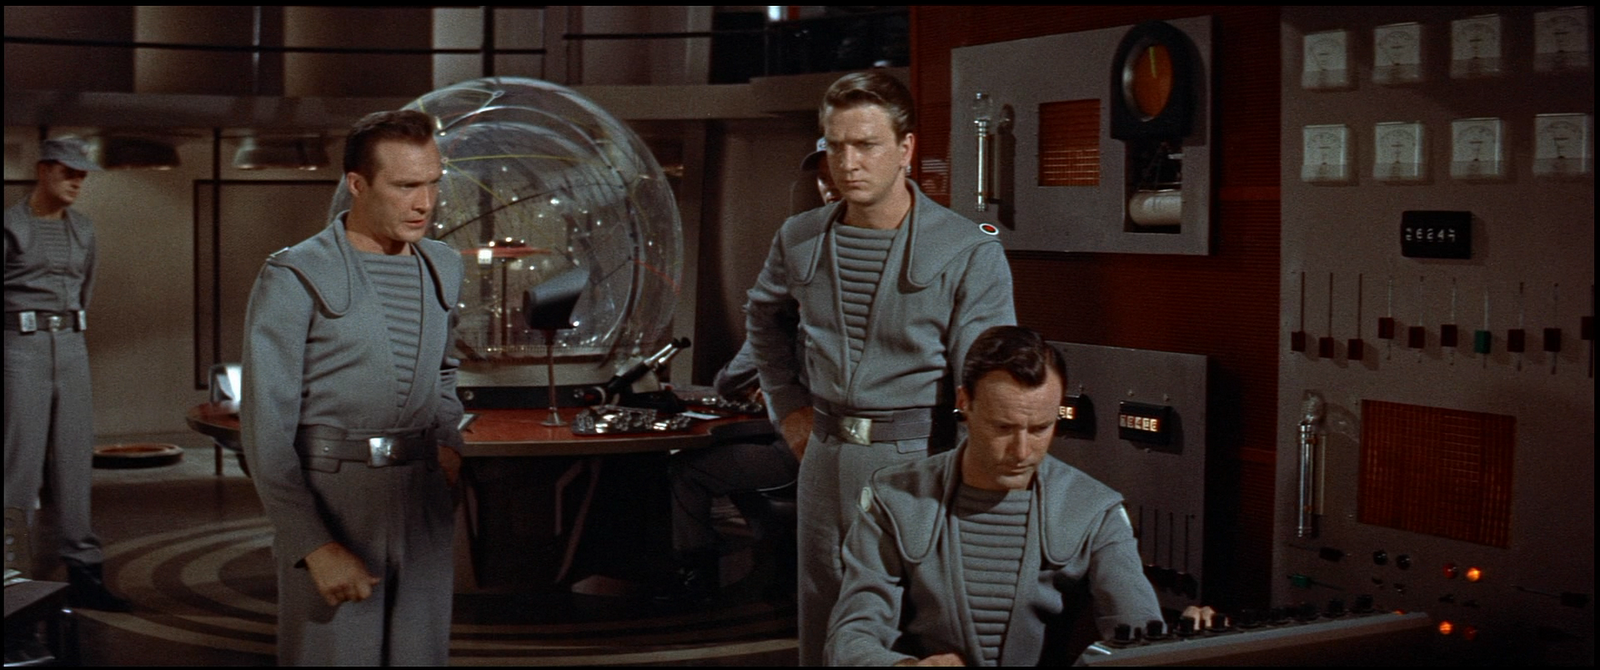 comparison between the play and the movie the tempest by william shakespeare My friend recently told me that the movie forbidden planet (1956), the science fiction monster movie, ripped off shakespeare's play the tempest all i.